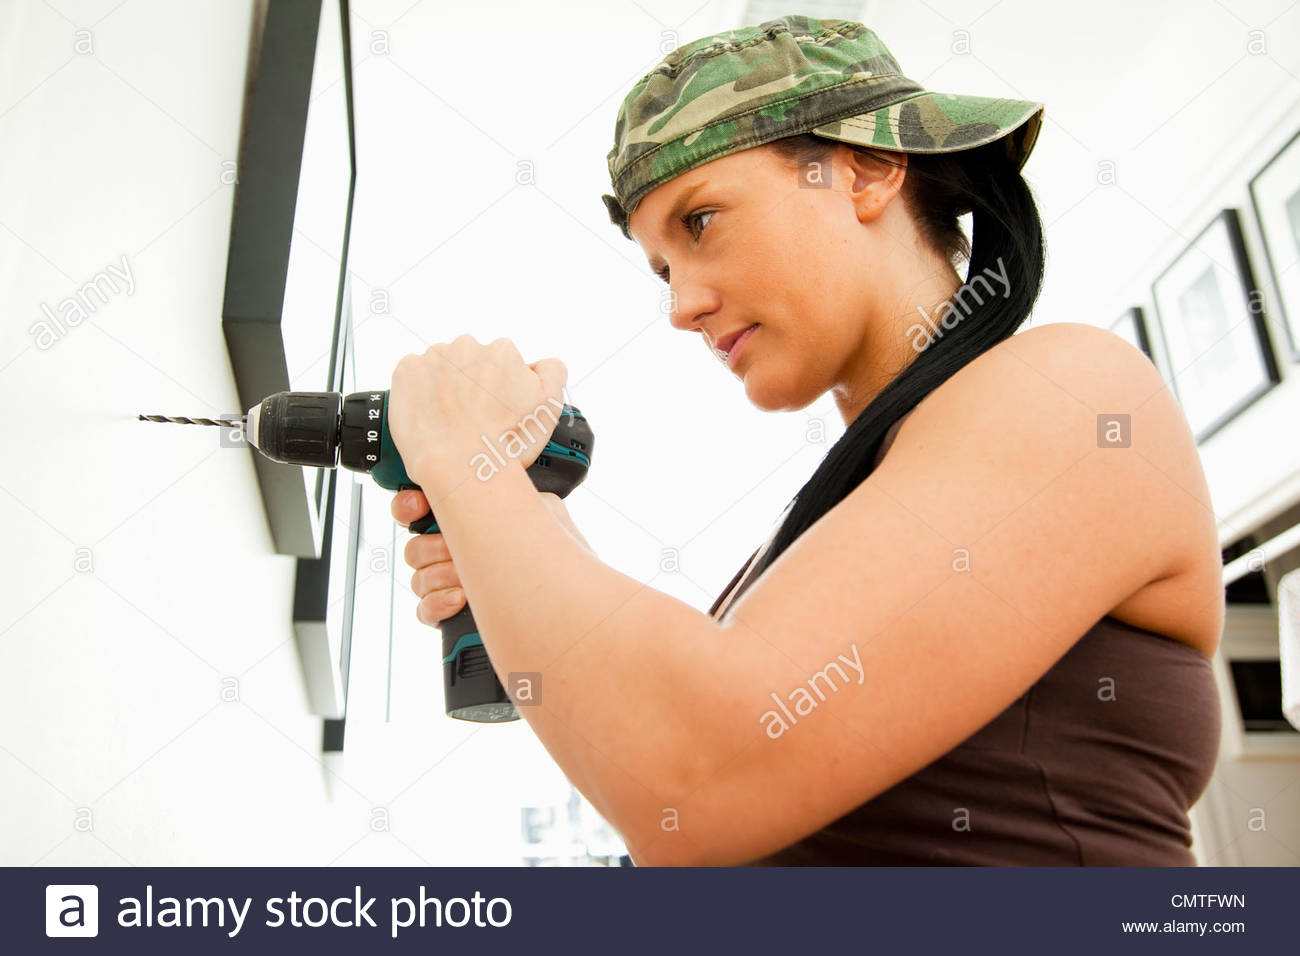 Woman standing with drilling machine against the wall - Stock Image